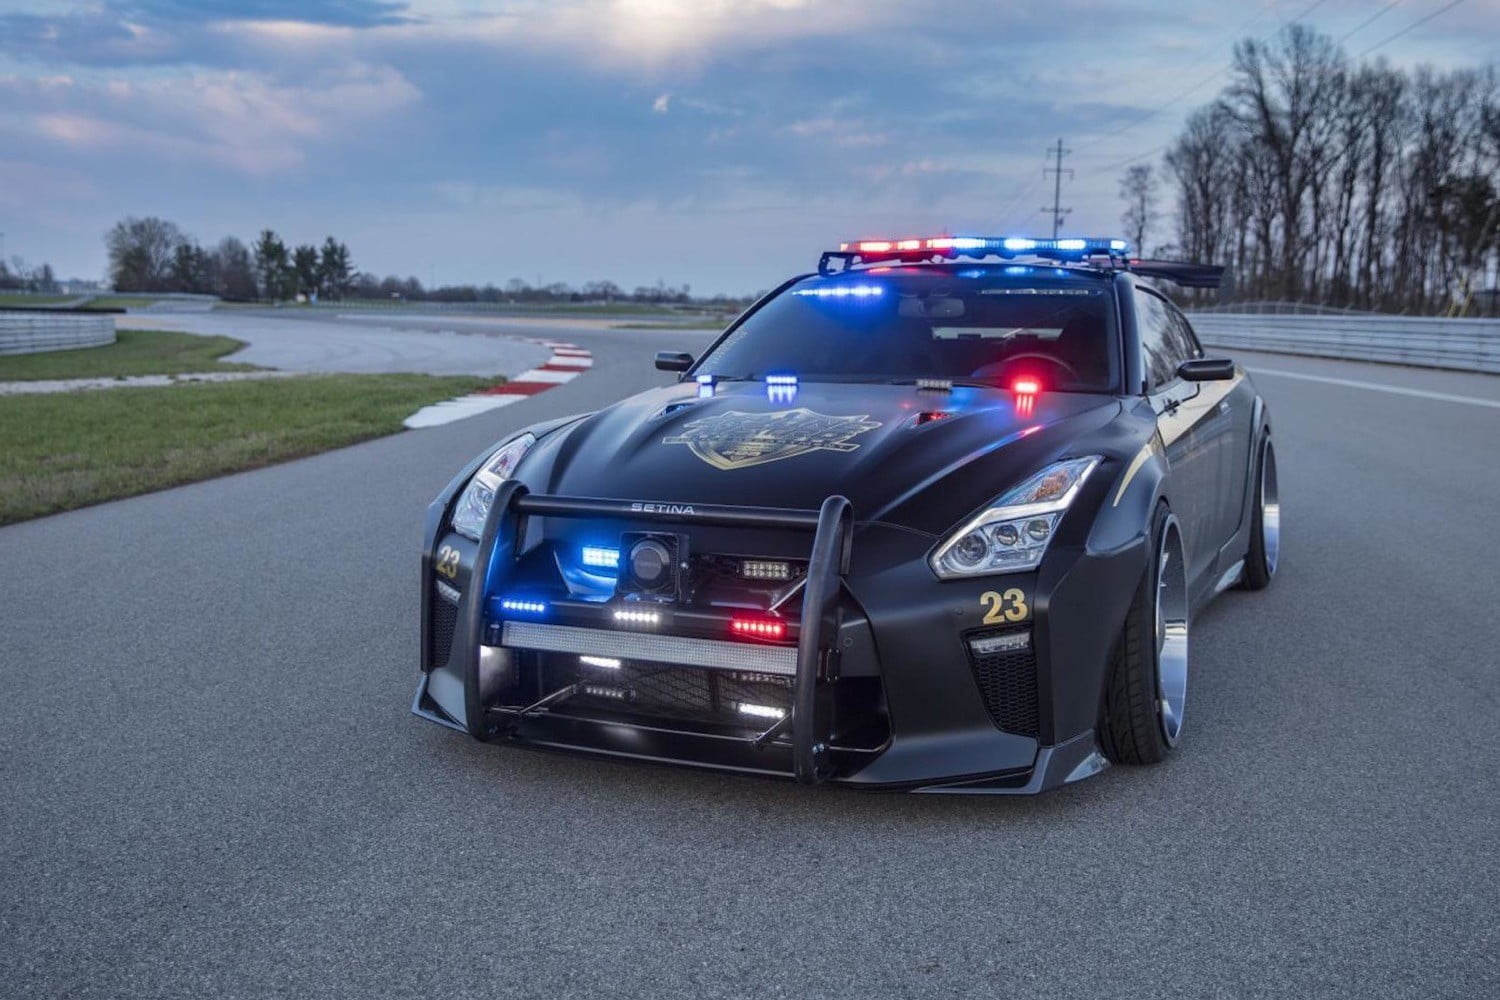 Meet Copzilla A Tricked Out Nissan Gt R Built To Fight Crime